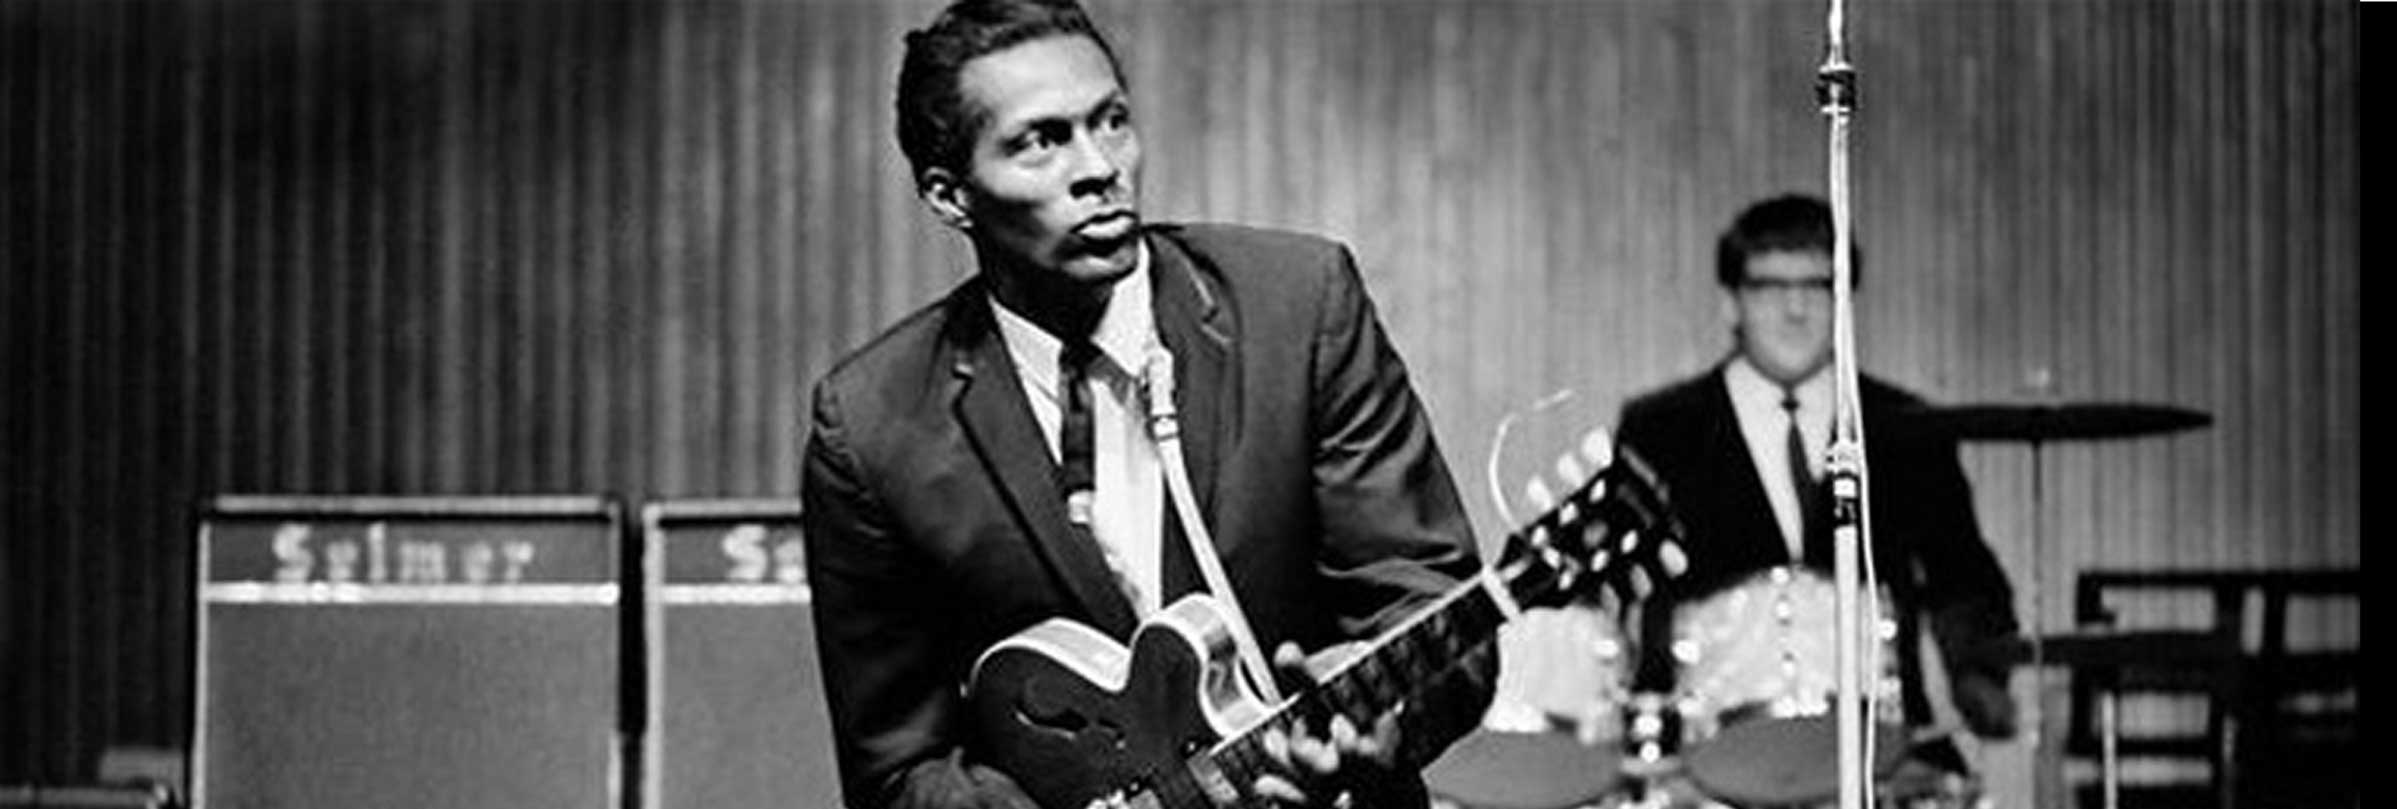 Chuck Berry – 20th Century Fox